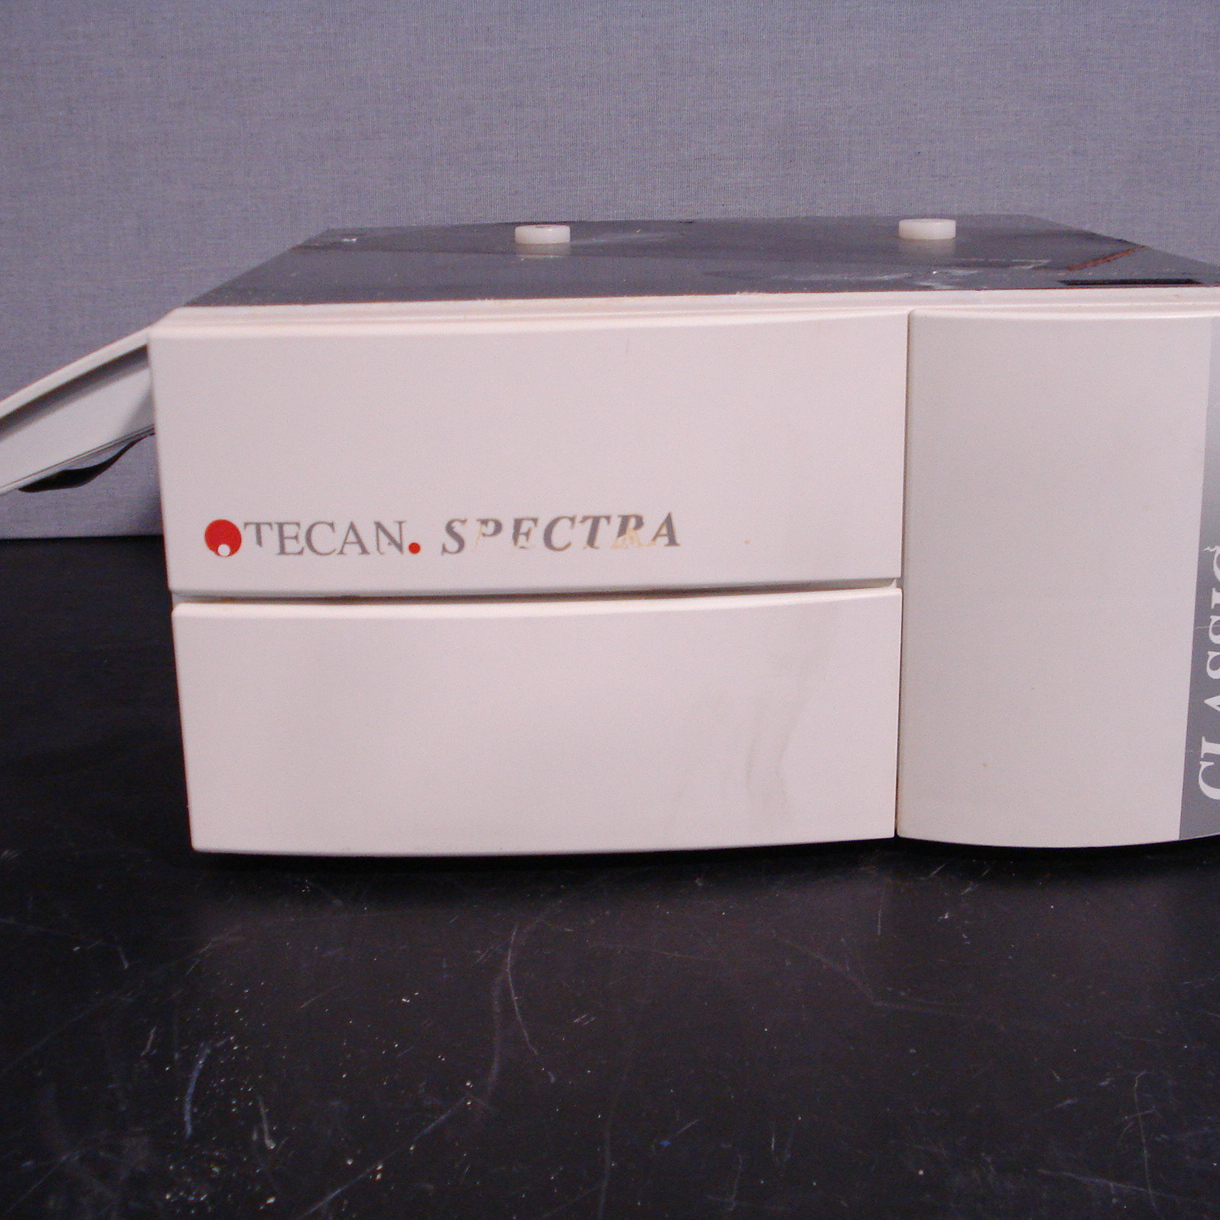 Tecan Spectra Classic Plate Reader Image